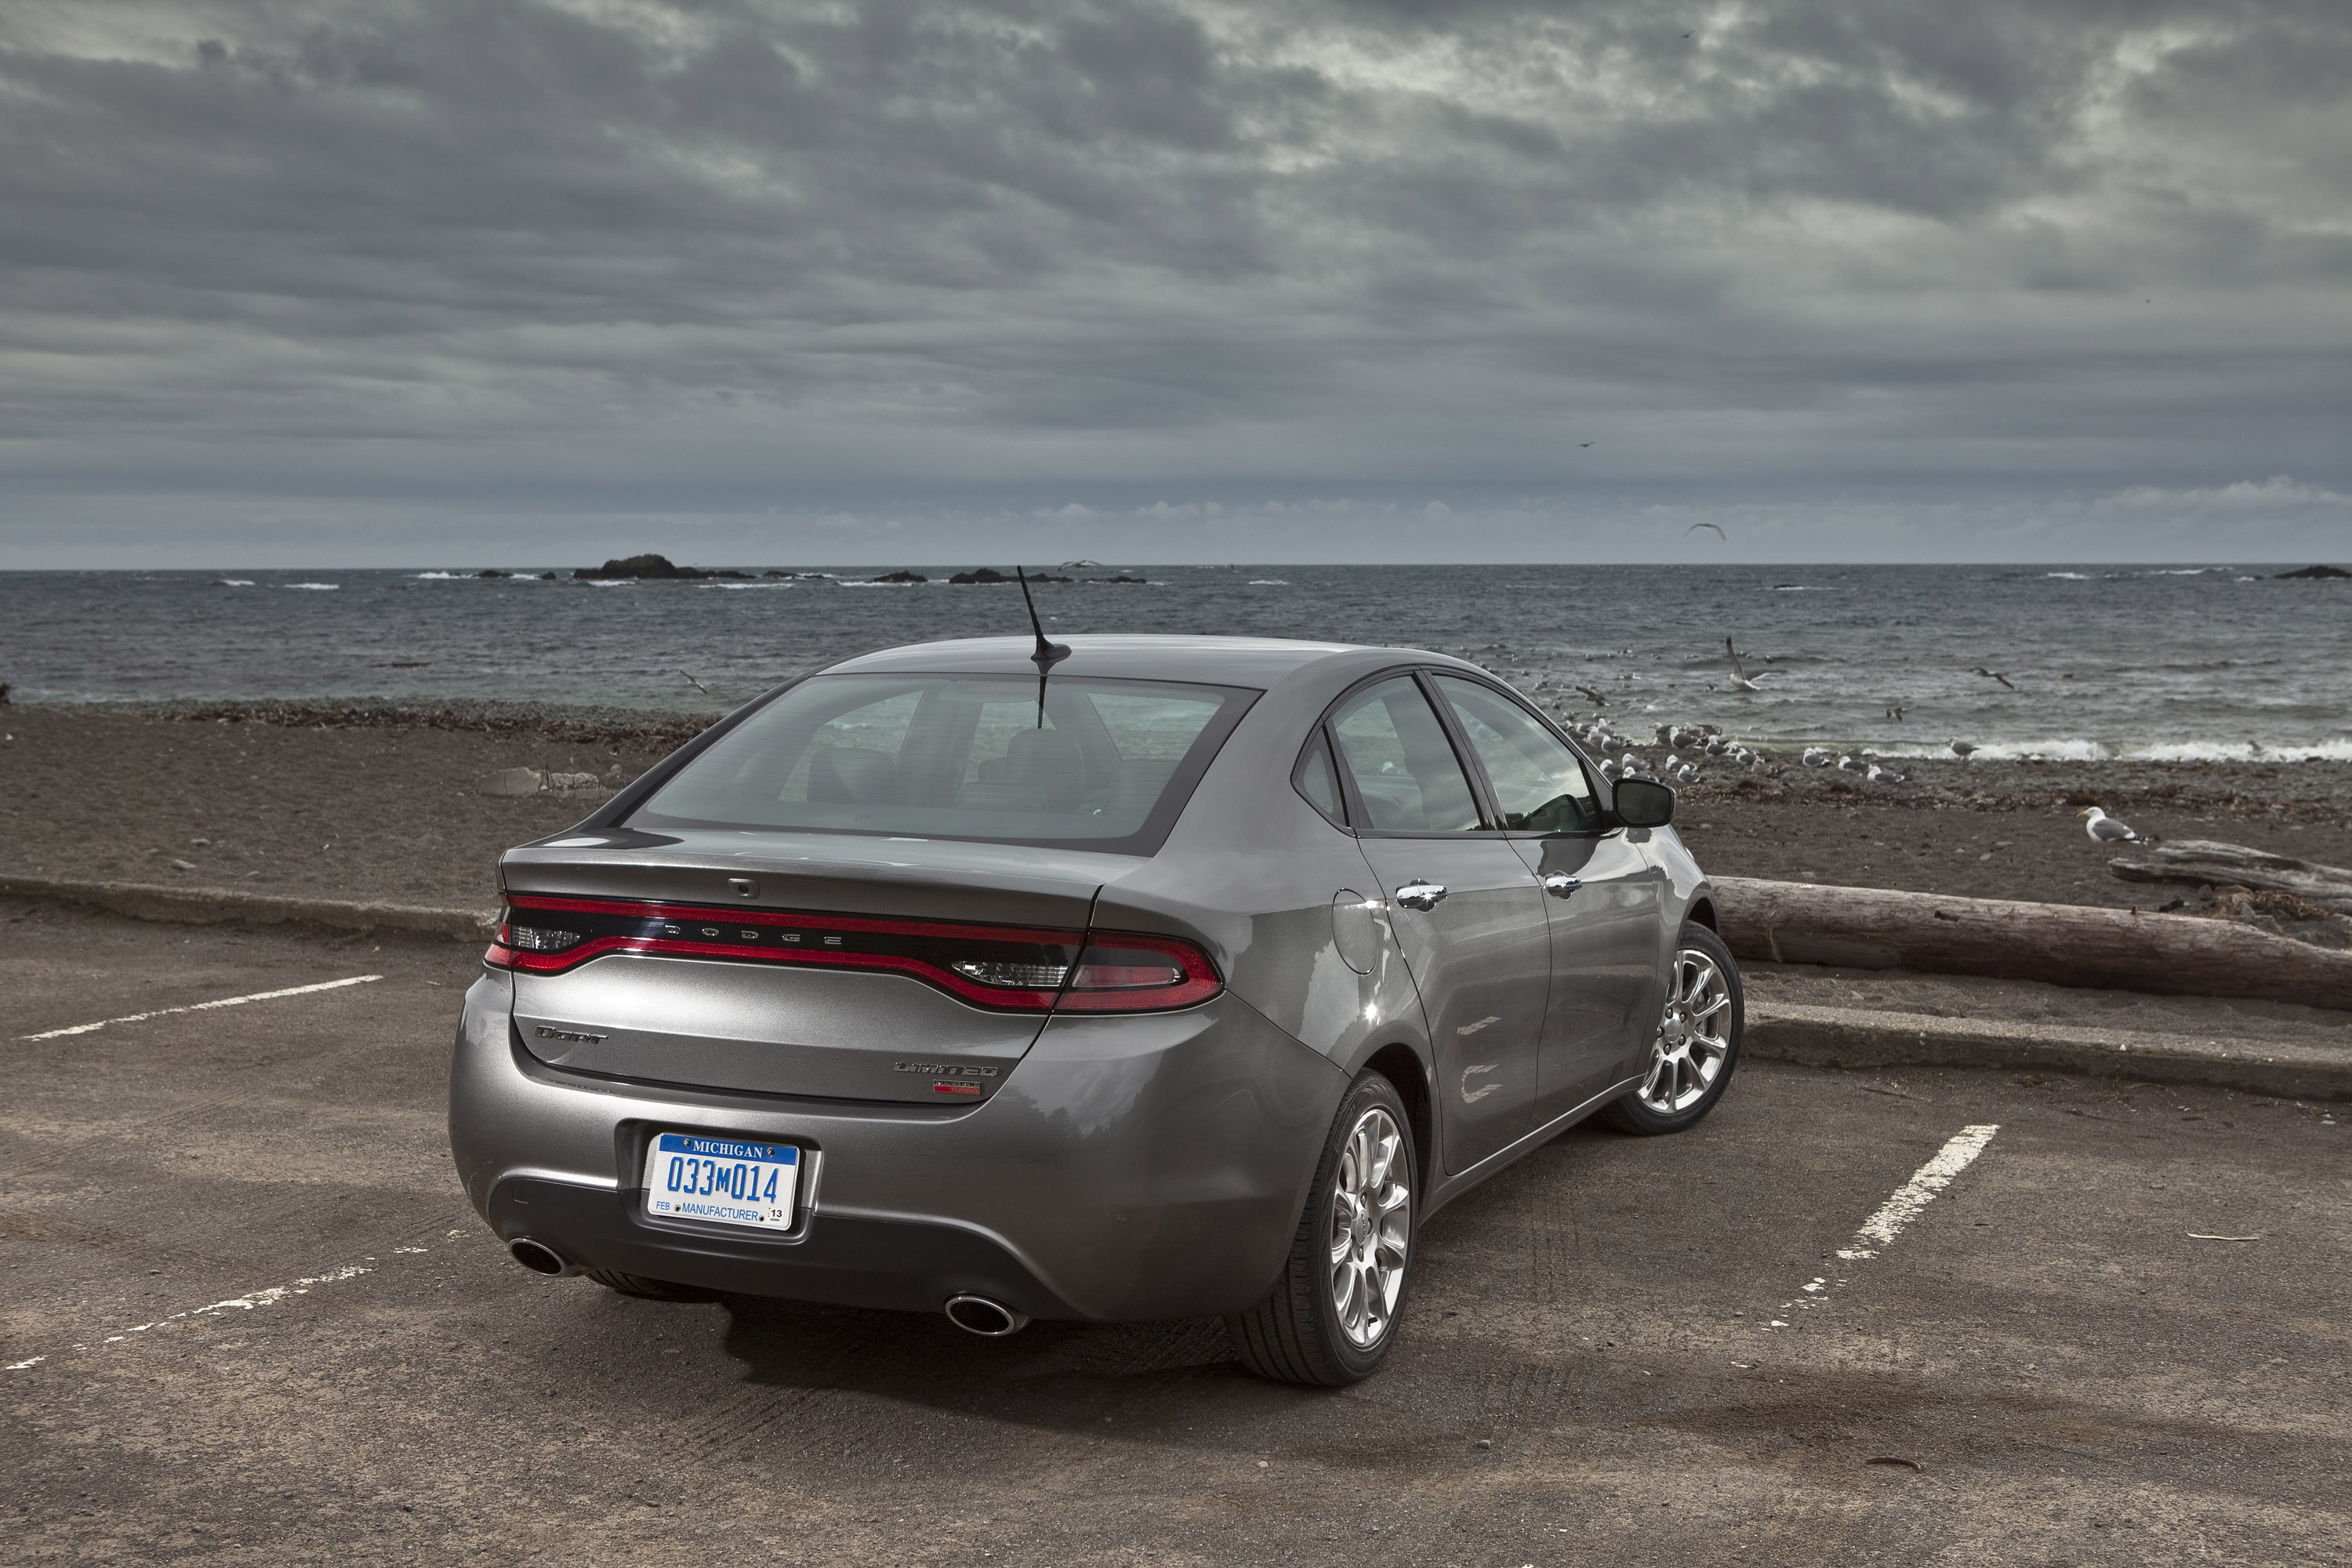 2013 Dodge Dart Aero - Picture 75551